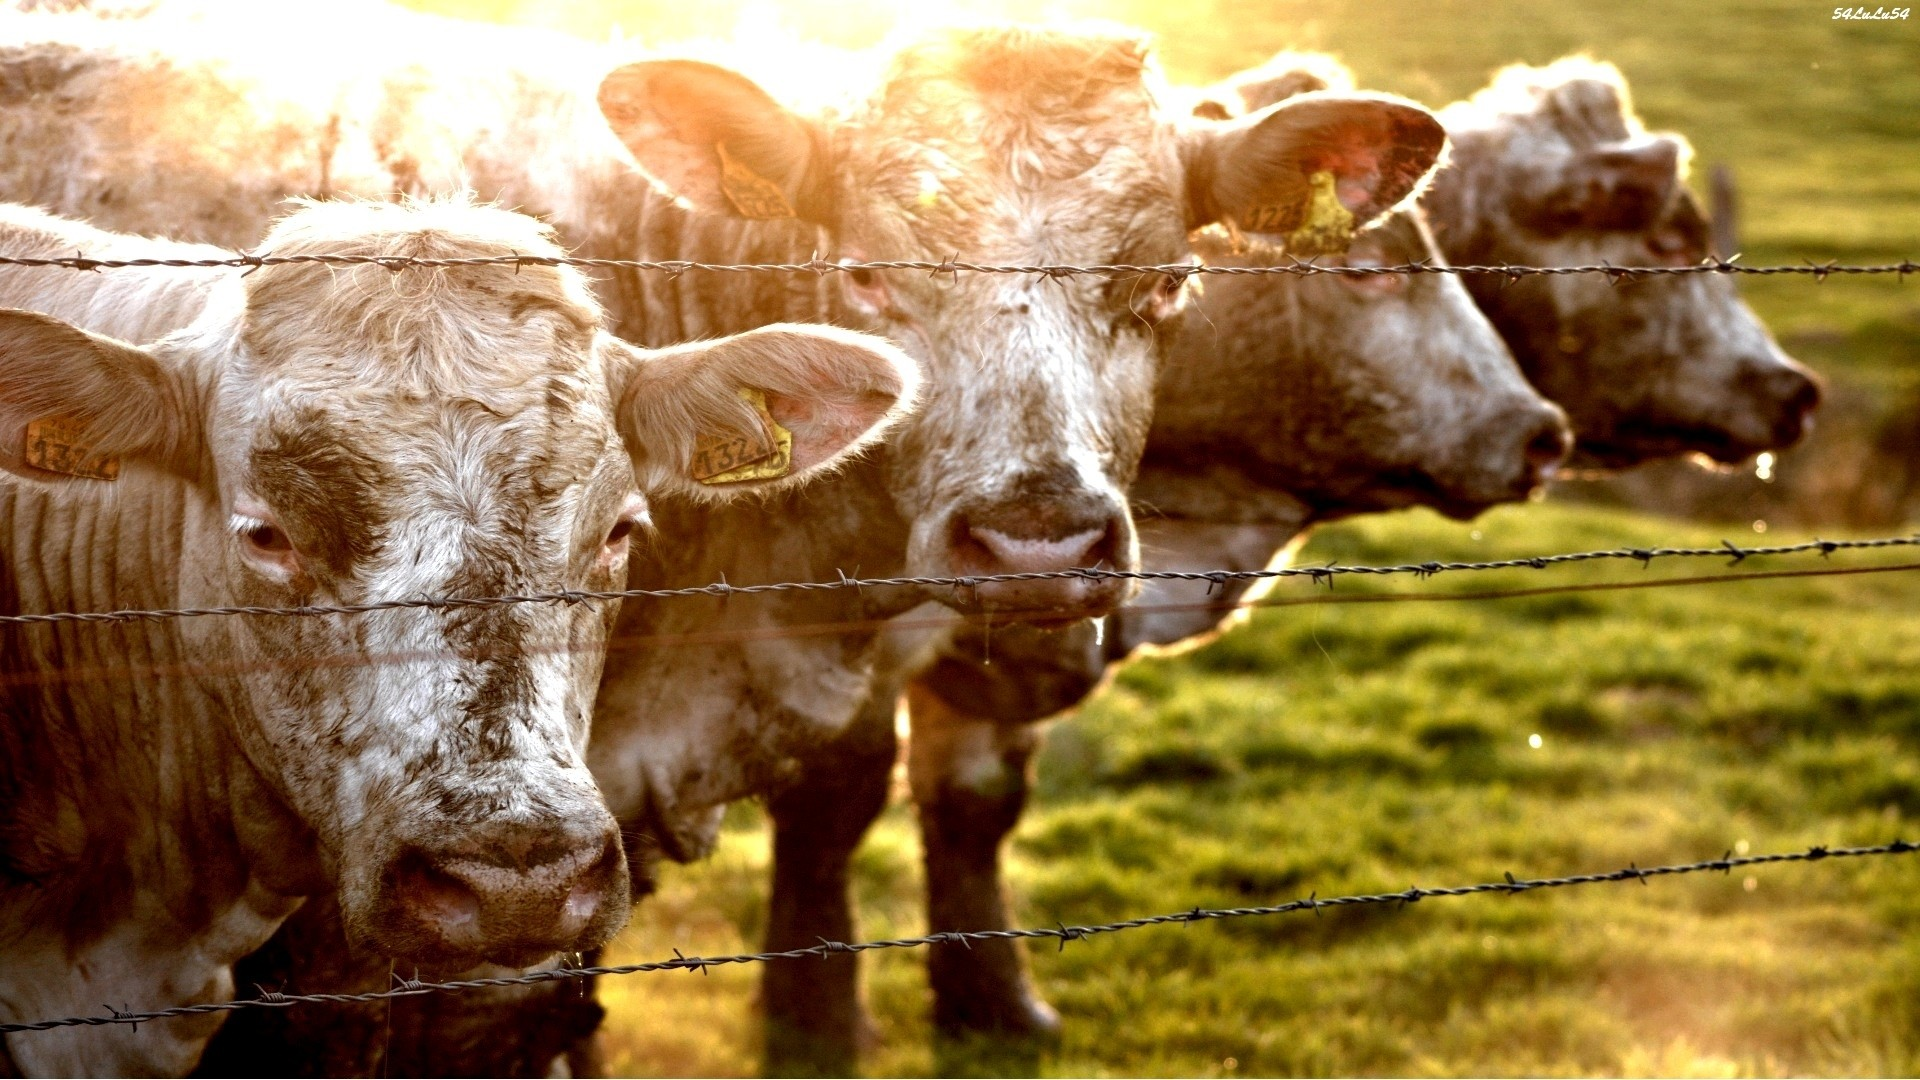 images of a cow